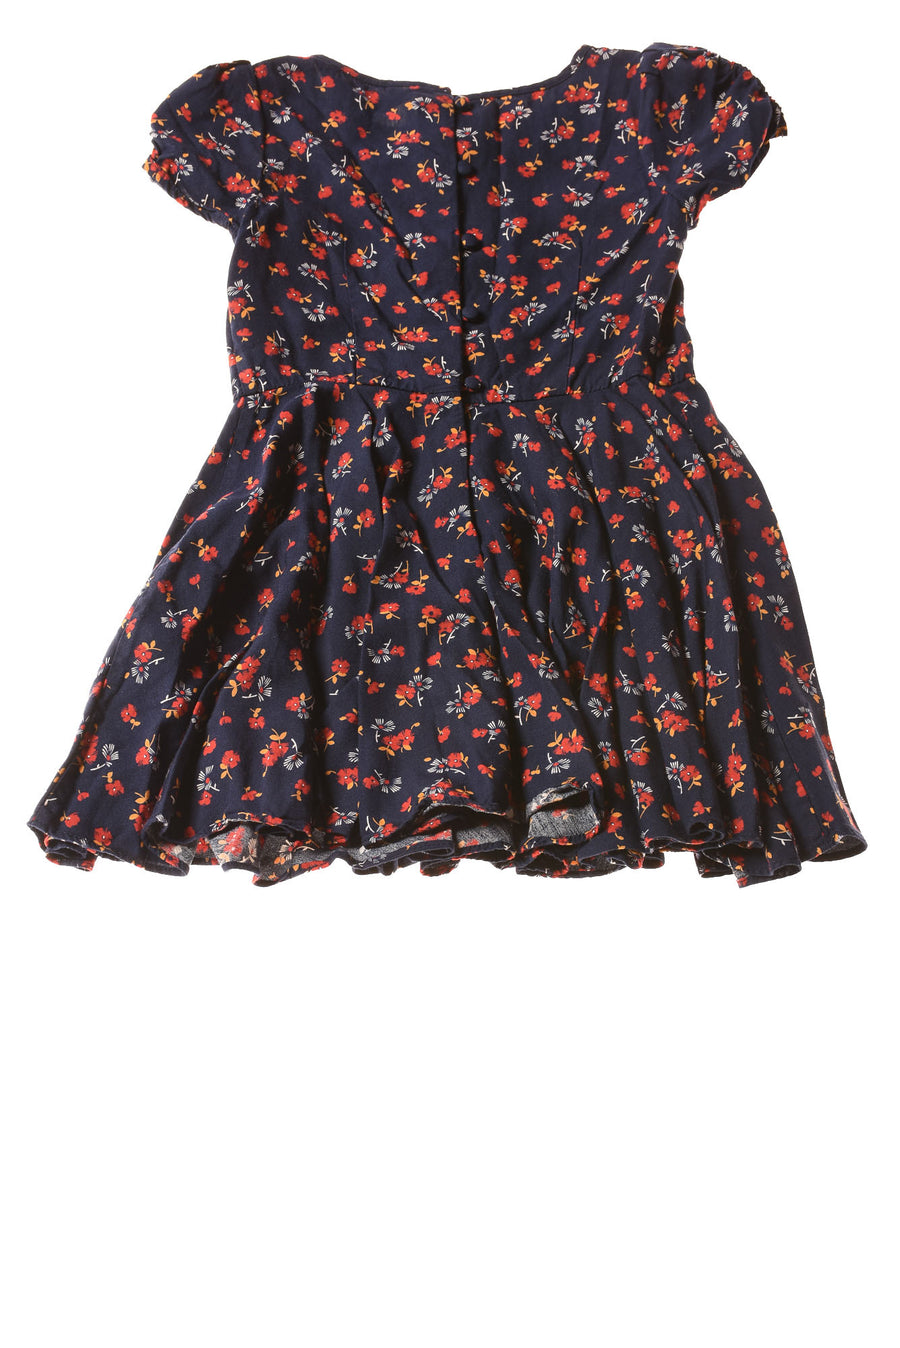 USED Ralph Lauren Toddler Girl's Dress 3T Navy / Floral